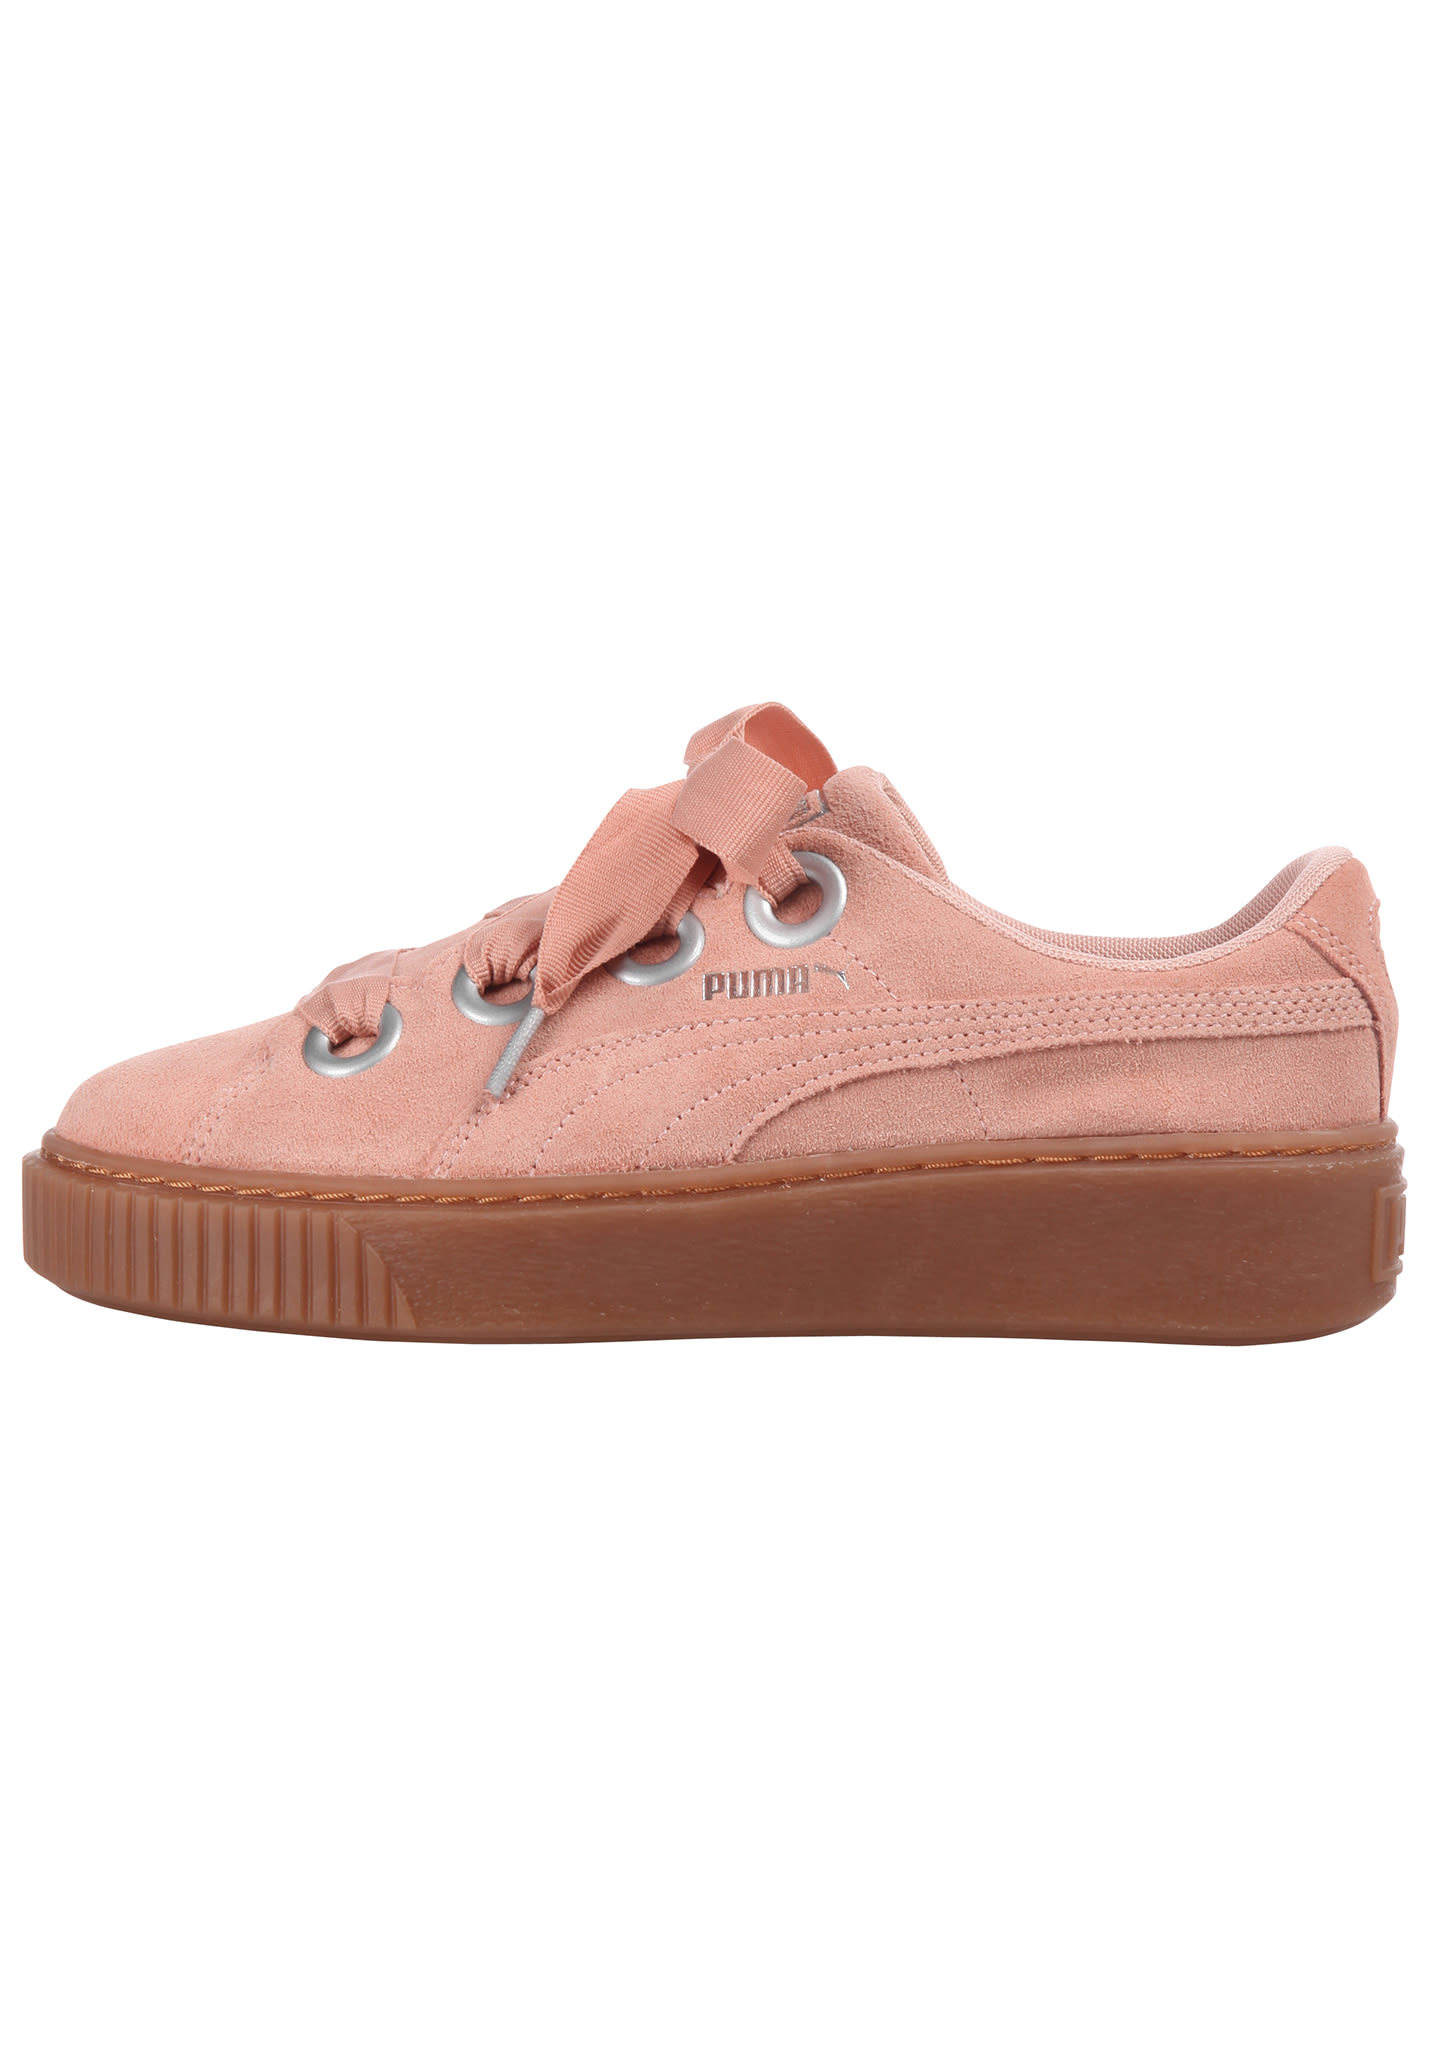 Puma Suede Sneakers Kiss For Platform Women Pink m8nvN0w